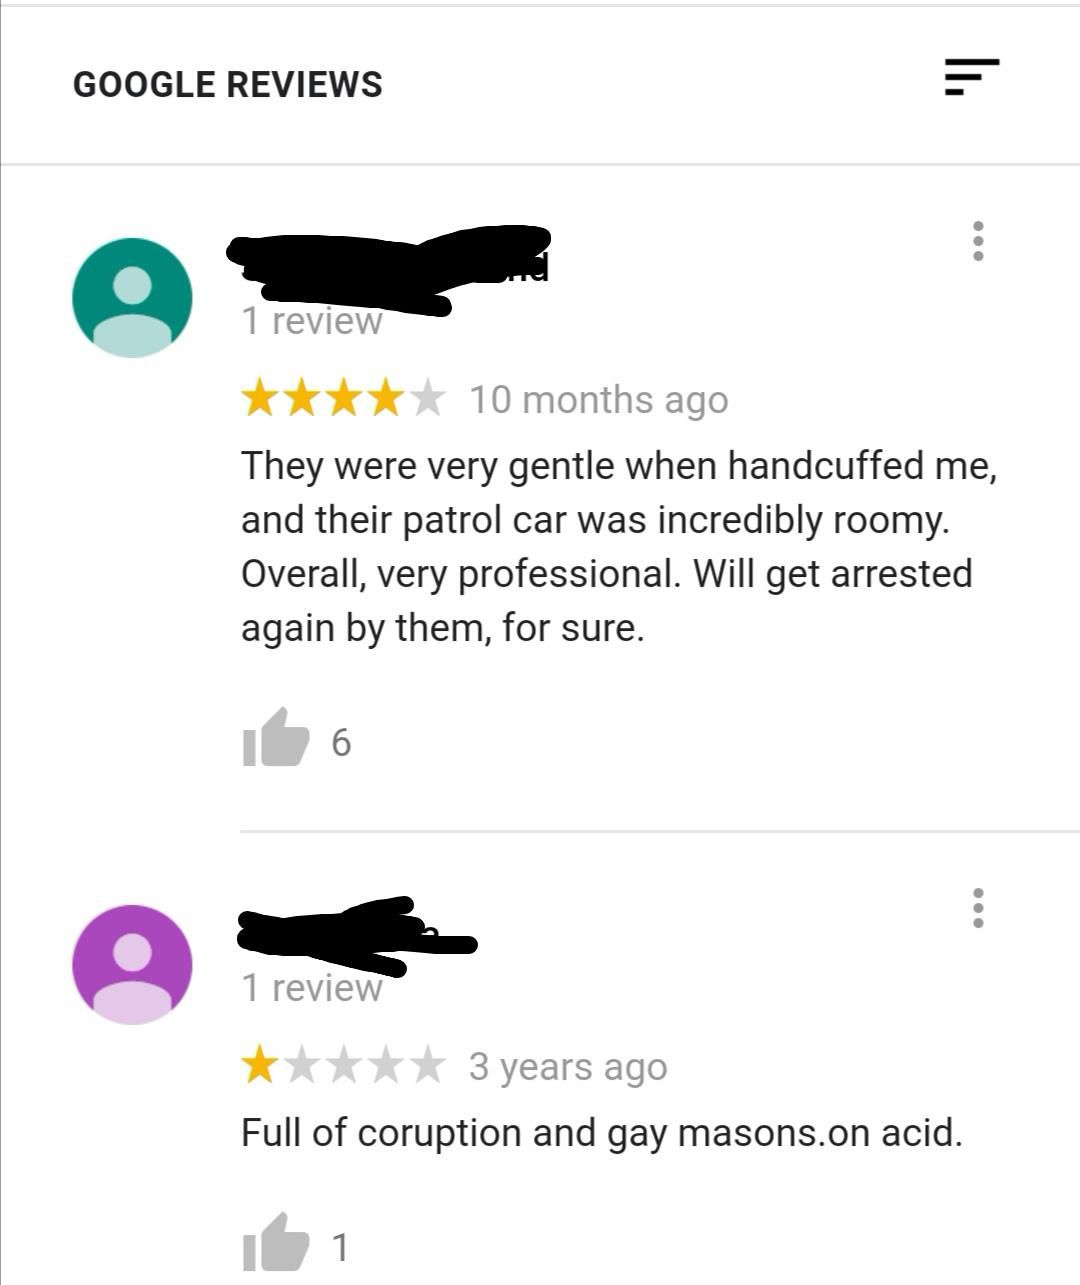 Reviews for the local police station